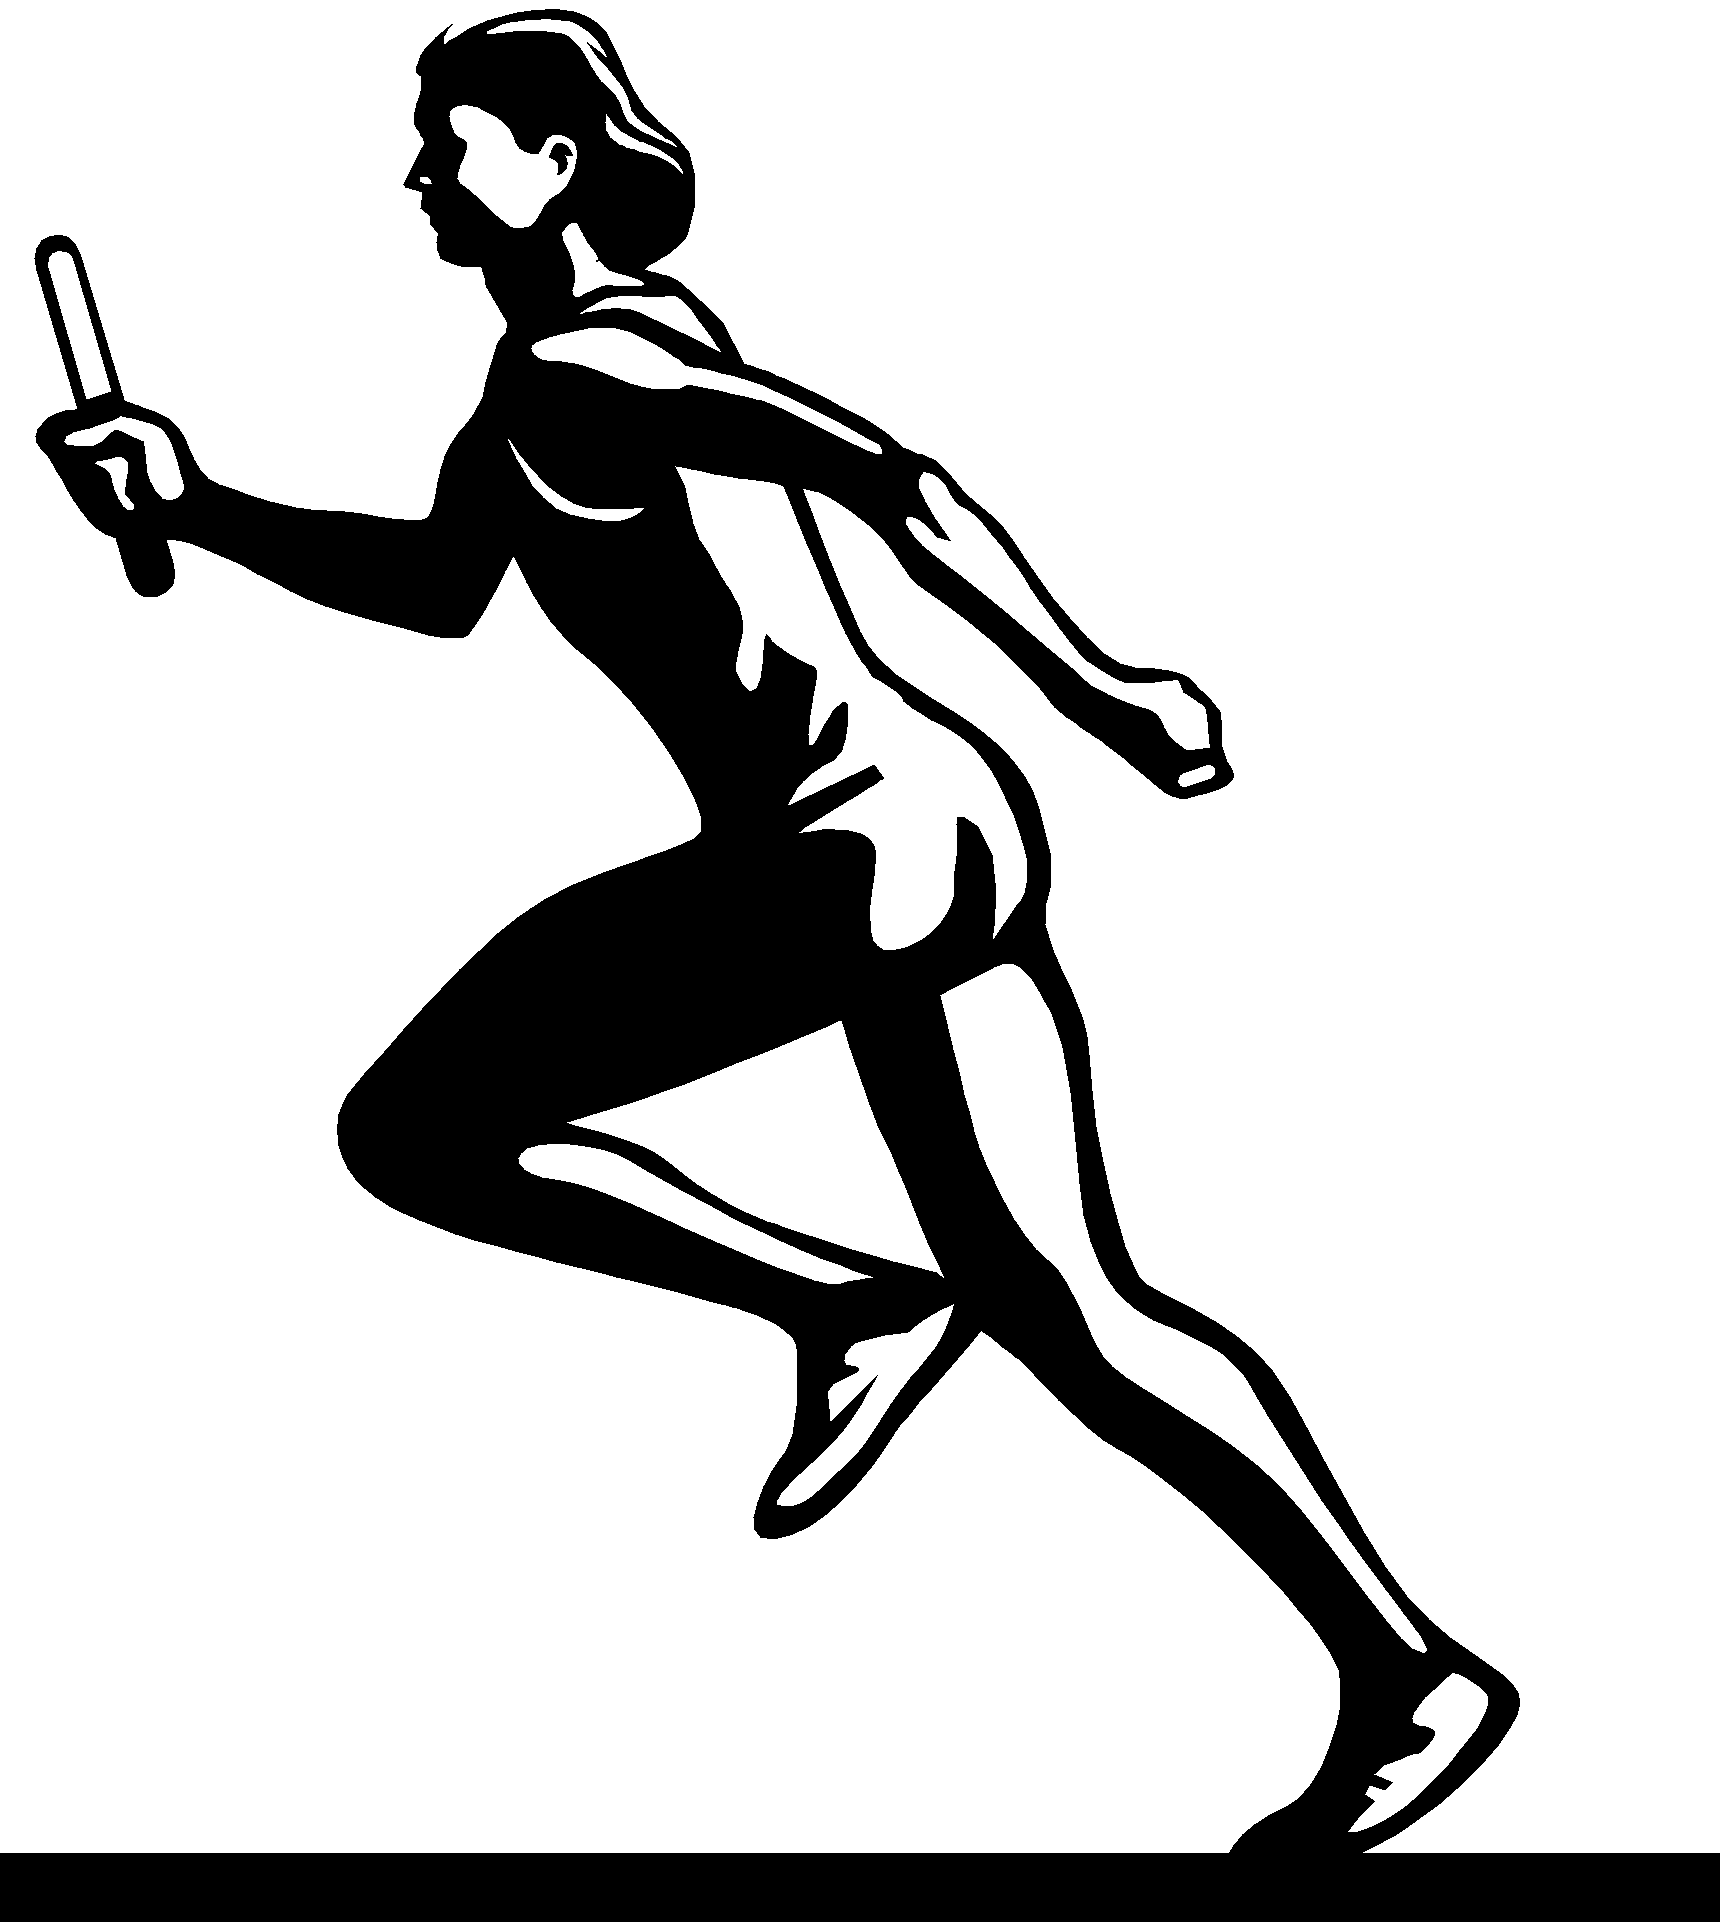 Symbol clipart track and field Running Track Best collection track